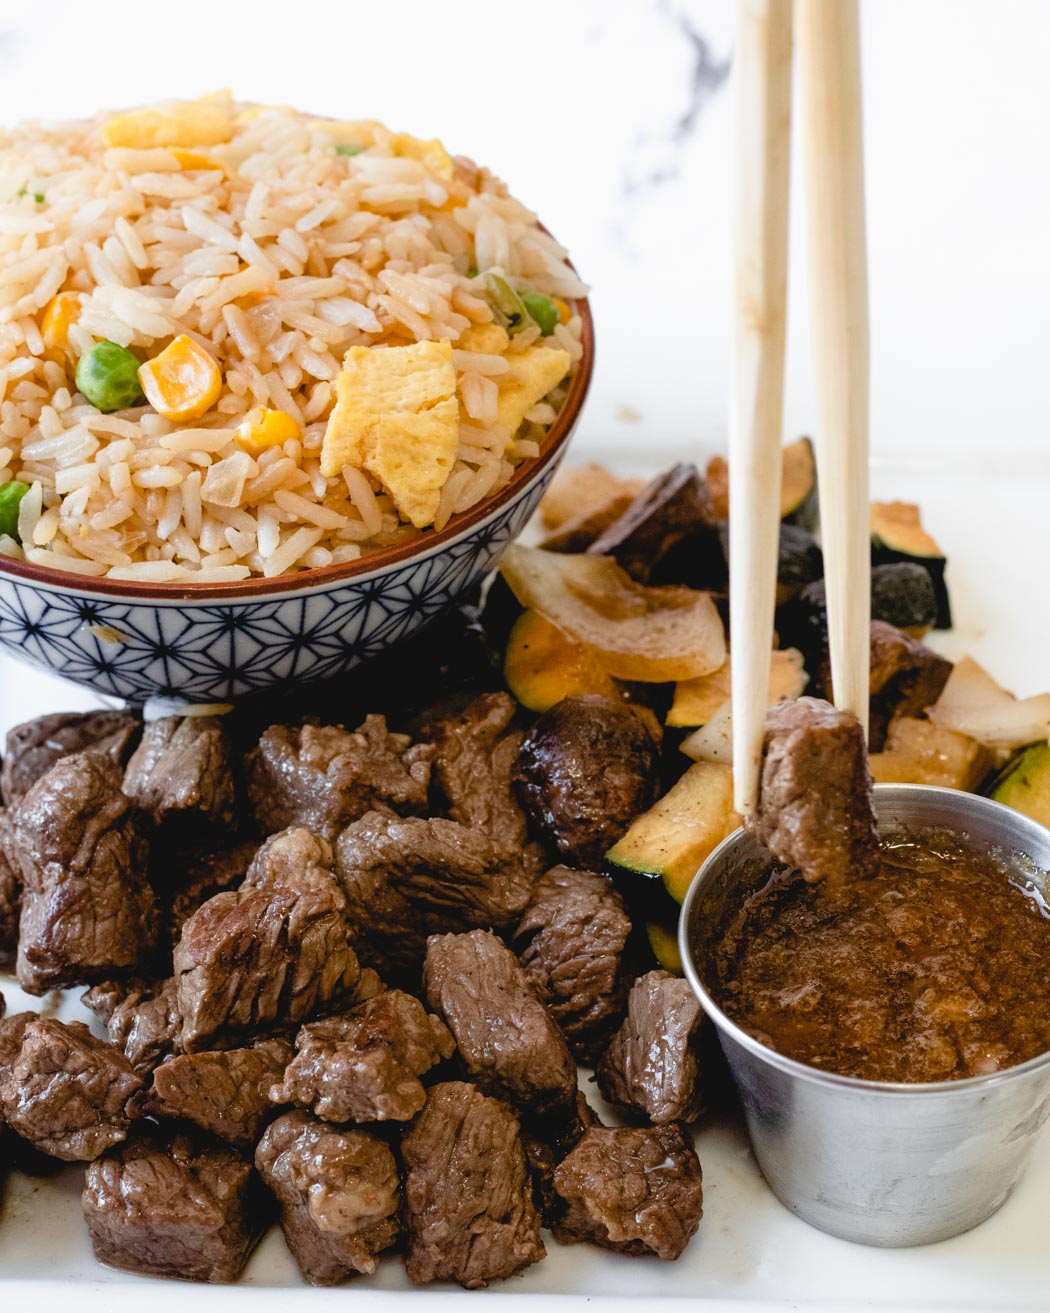 Plate of steak pieces, veggies, and fried rice with chop sticks dipping a piece of beef into ginger sauce.